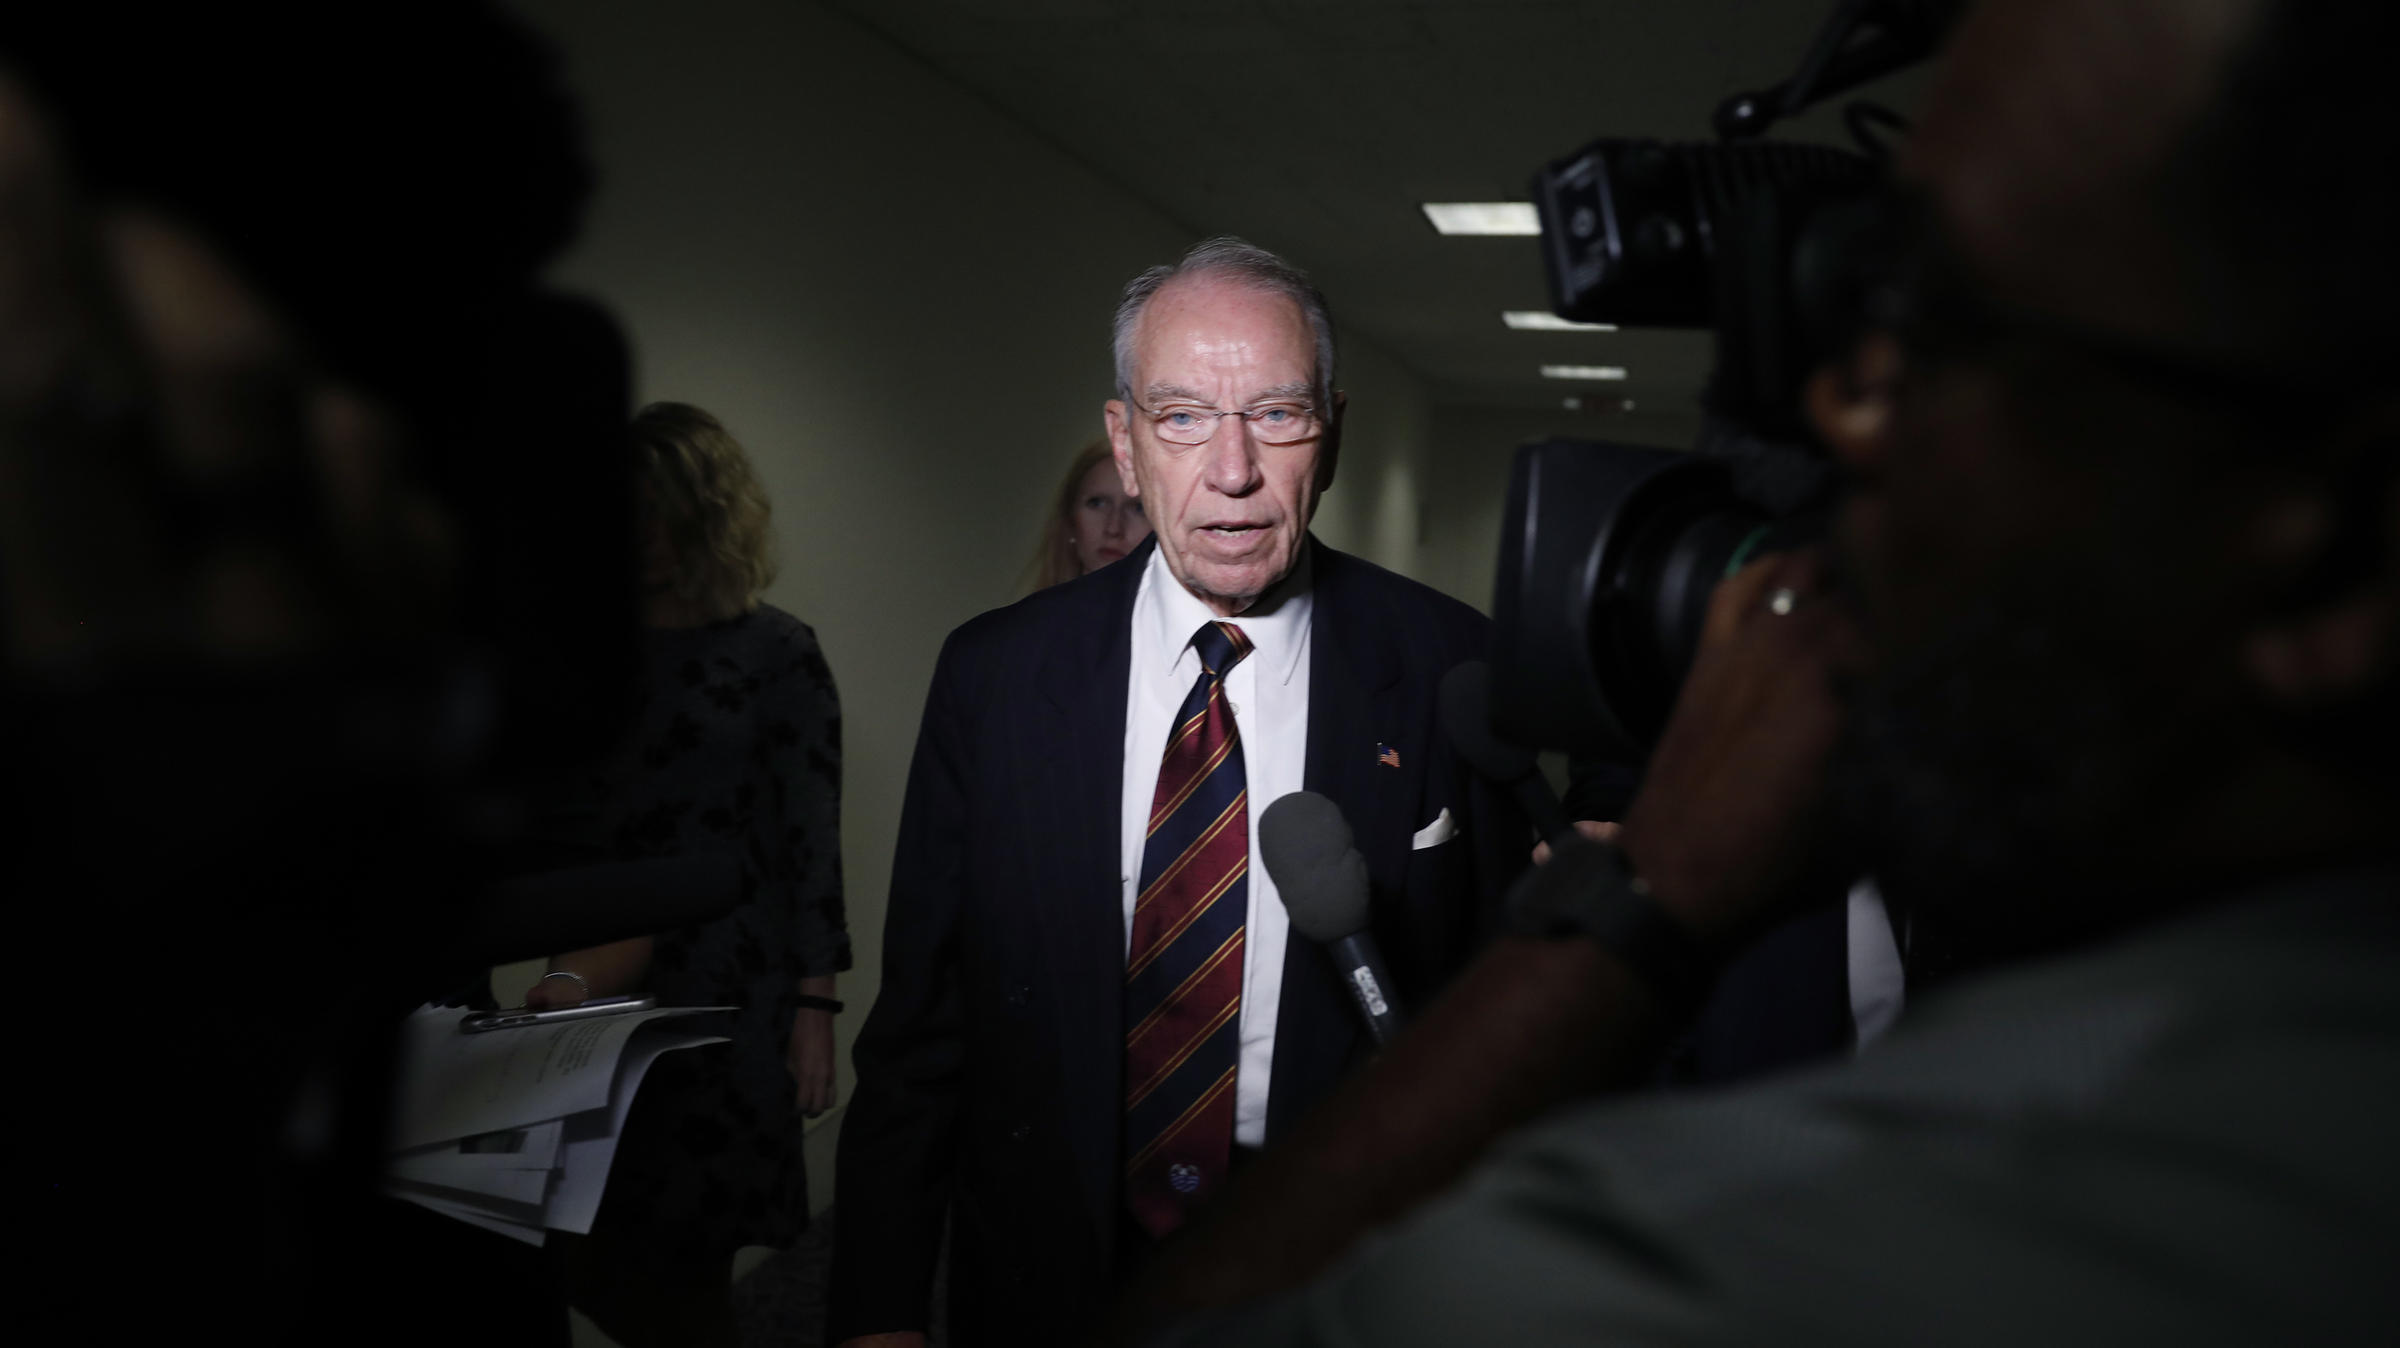 Senate Judiciary Chairman Chuck Grassley R-Iowa has requested a response from Christine Blasey Ford about whether she will testify before the committee